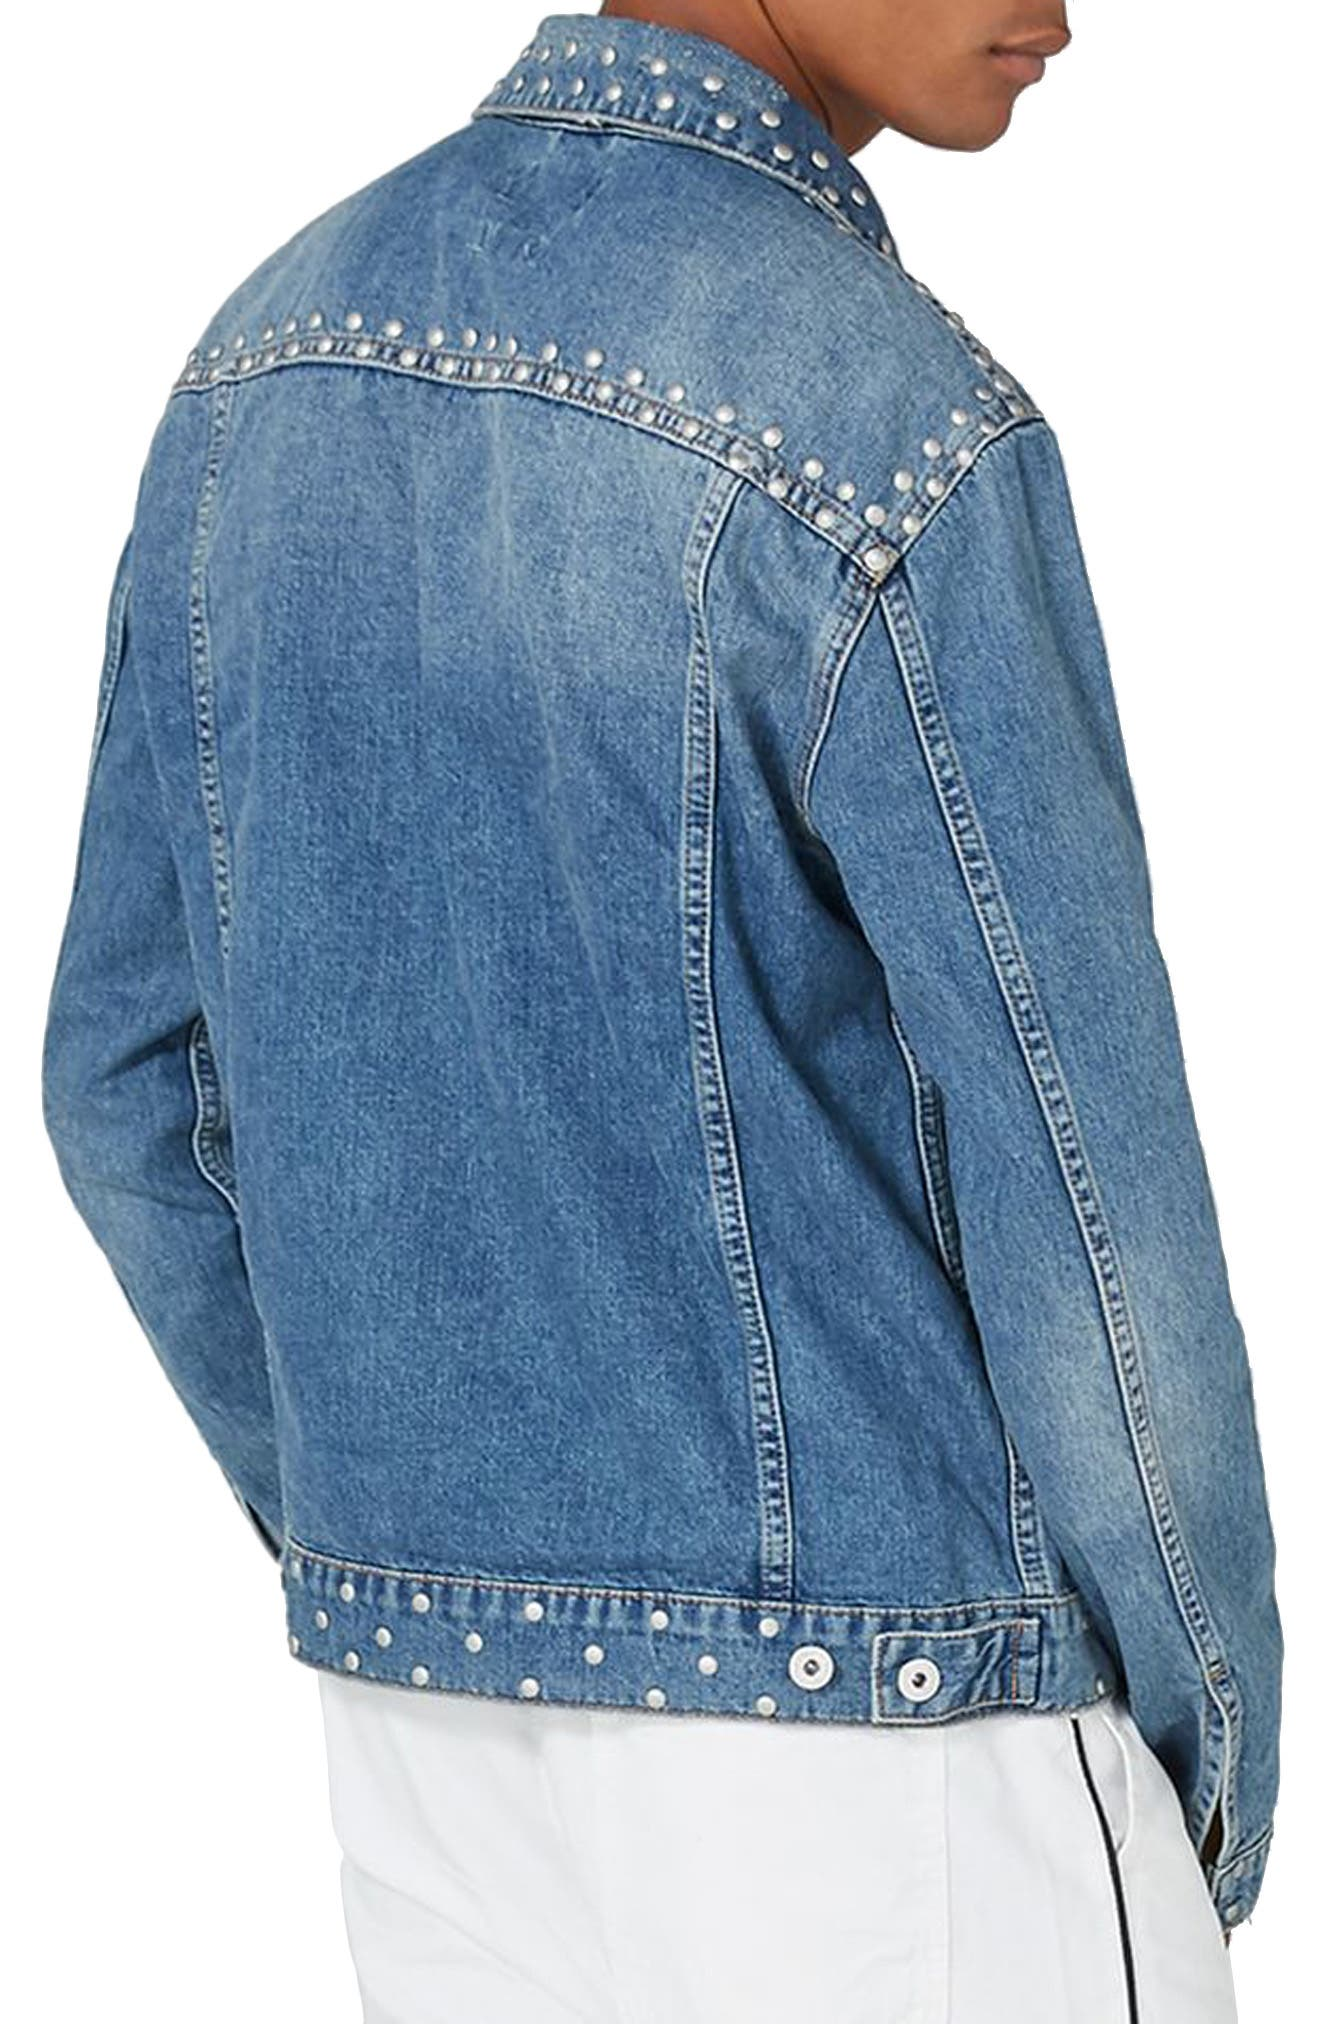 Studded Denim Jacket,                             Alternate thumbnail 2, color,                             450